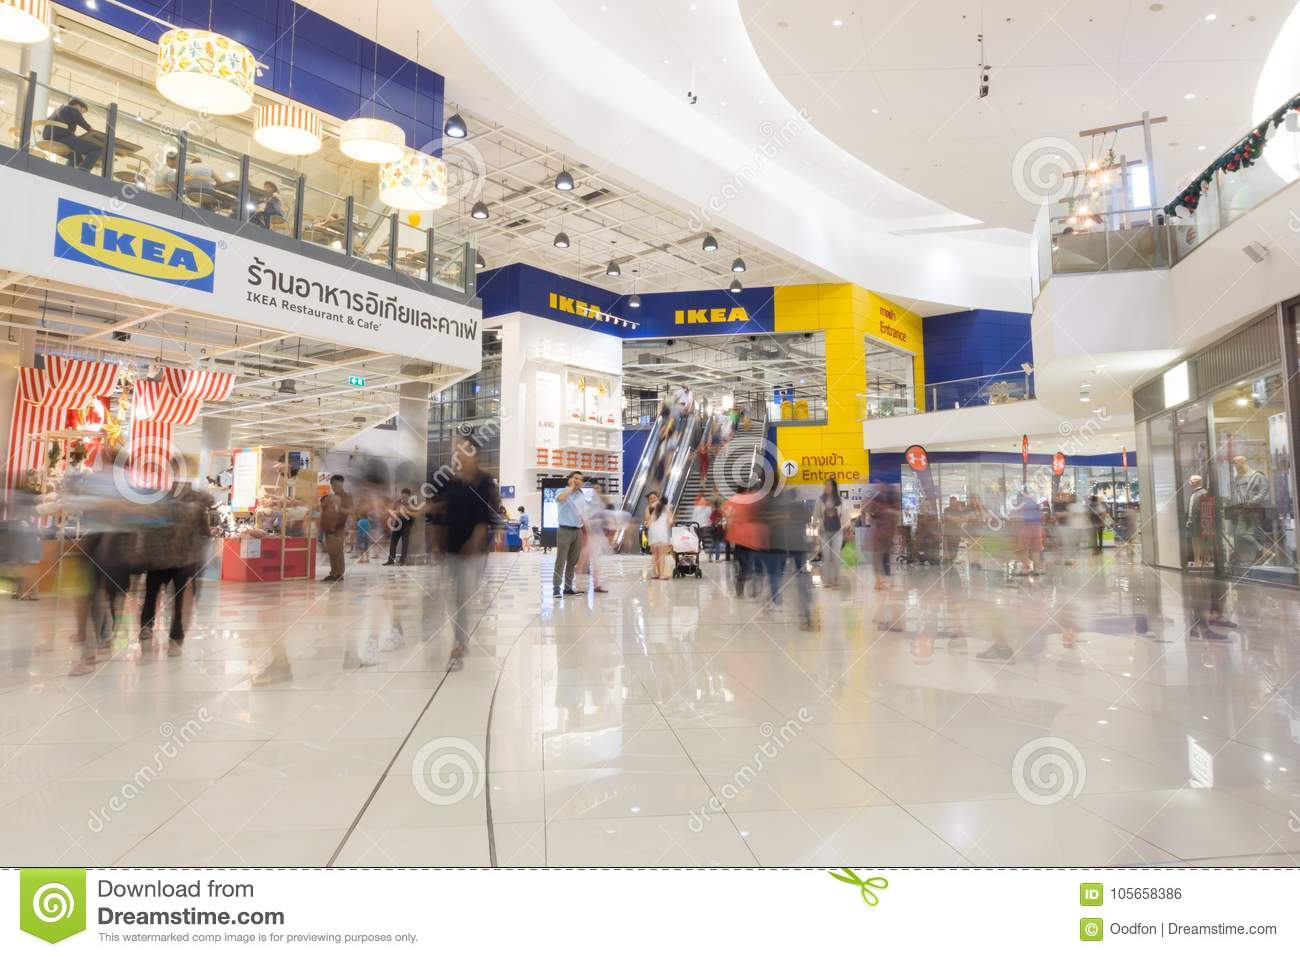 Ikea Is The World`s Largest Furniture Retailer Store.Ikea Is A Slef Service  Furniture Store.